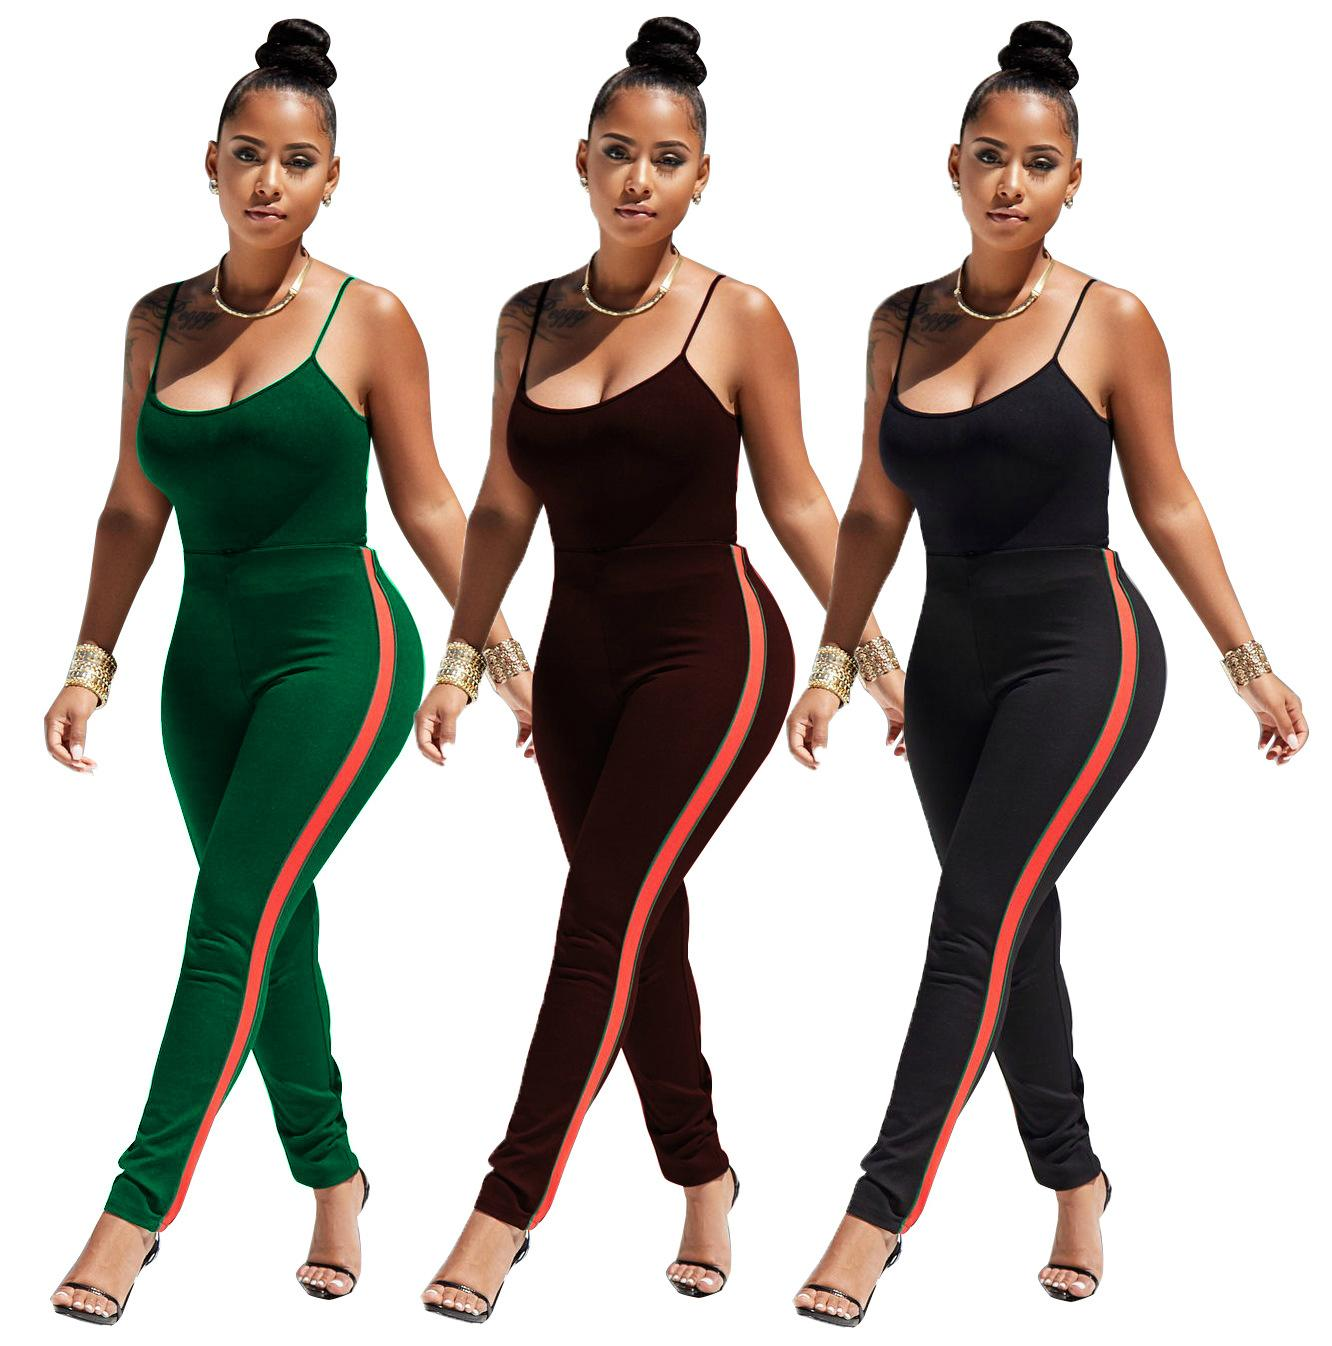 2019 Casual Women Suits 2018 Sexy Two Piece Outfits Girls Top Bras And Long  Pants Women Set Bodycon Yoga Suit Womens Clothing Size S XXXL From  Chenyuanfang 76c4d7a91e6d